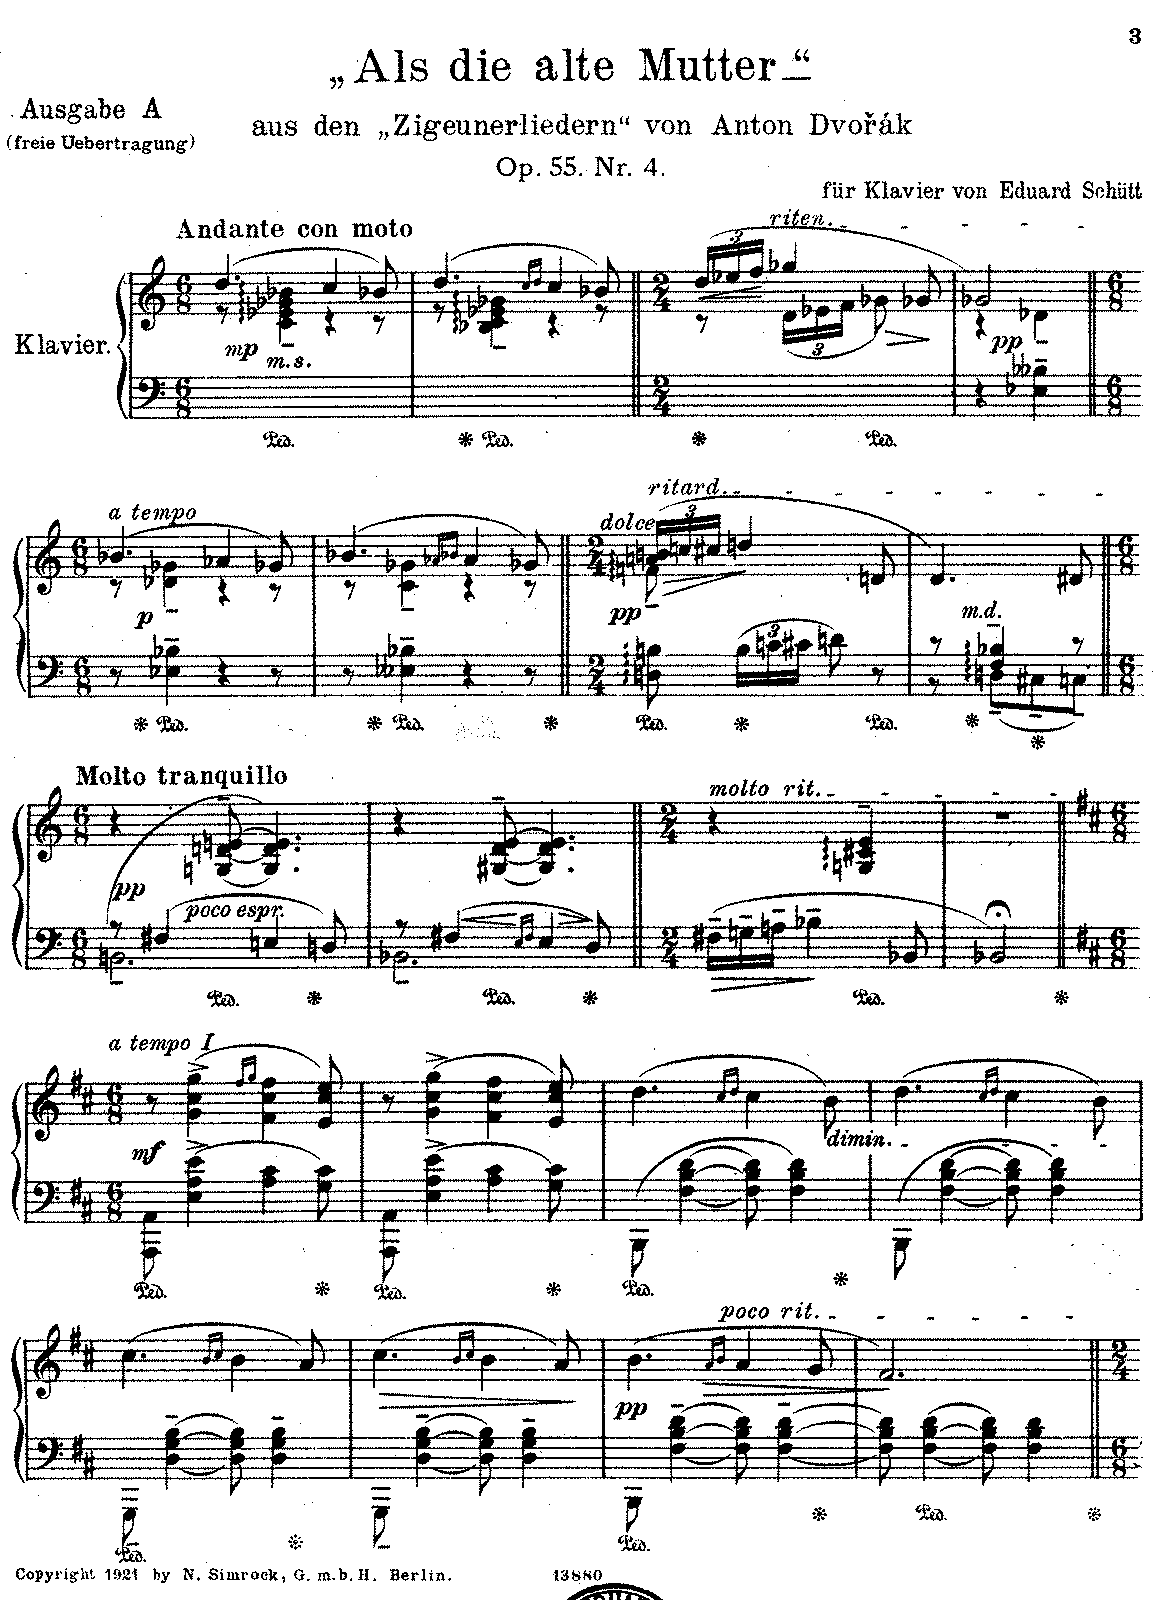 Schutt-Dvorak - Mutter Op.55 No.4.pdf